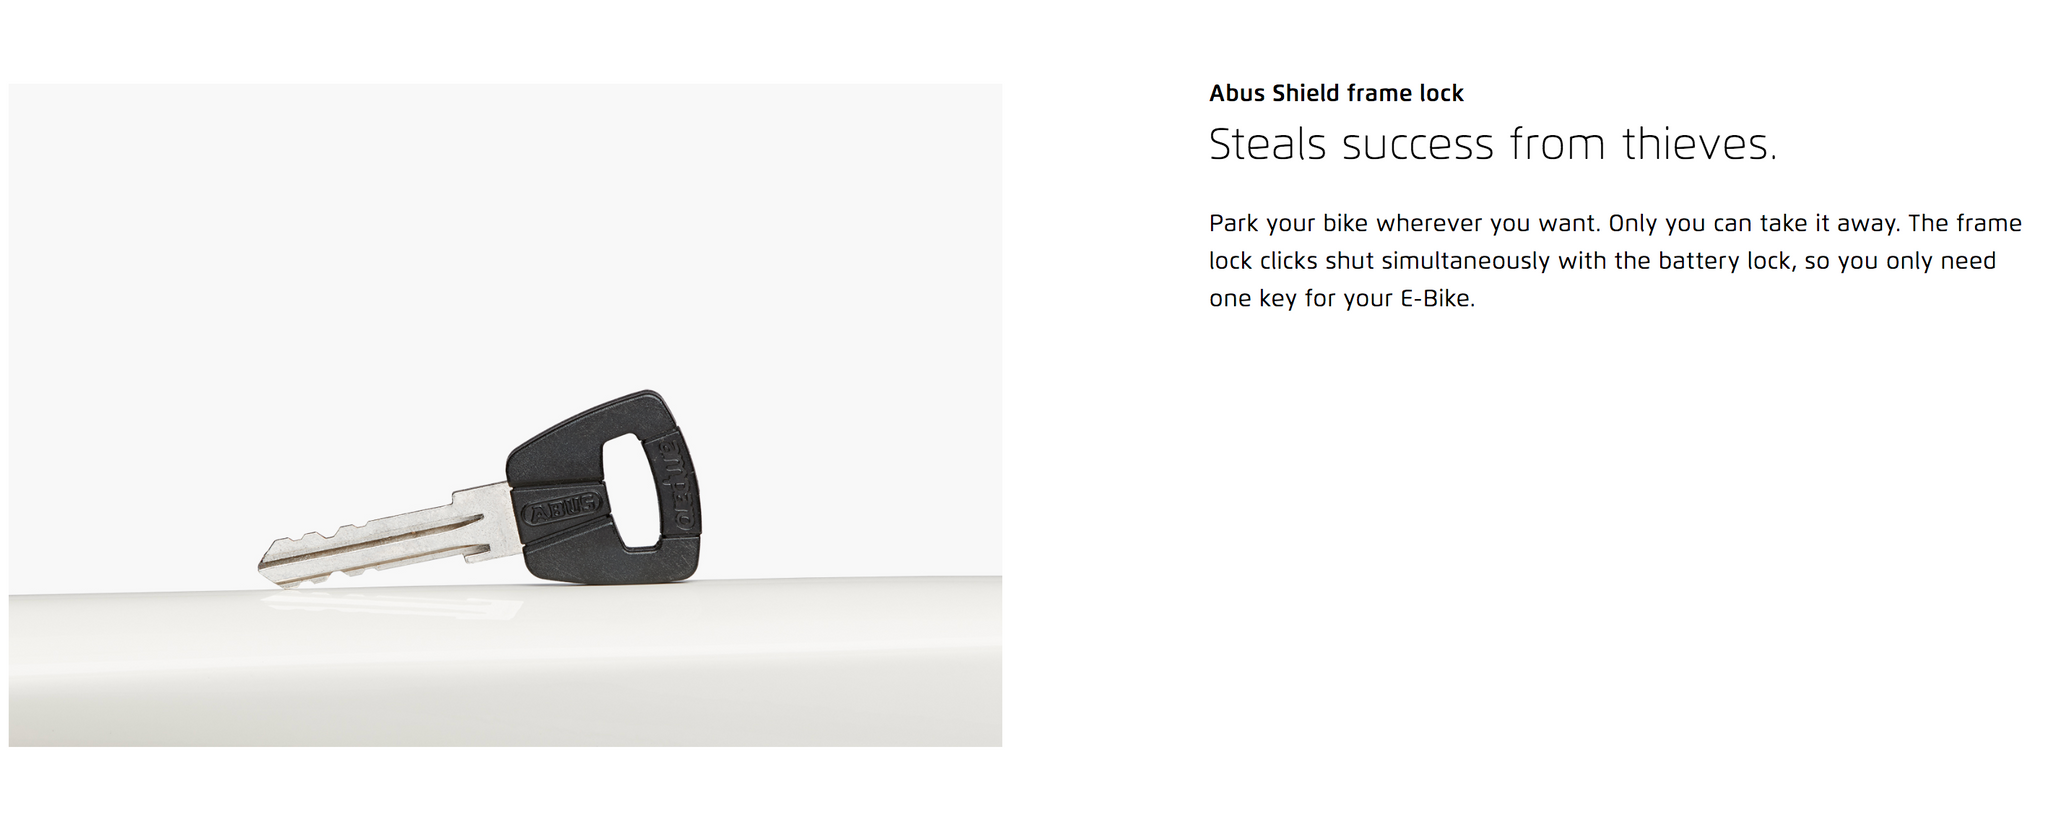 Abus Shield frame lock  Steals success from thieves. Park your bike wherever you want. Only you can take it away. The frame lock clicks shut simultaneously with the battery lock, so you only need one key for your E-Bike.